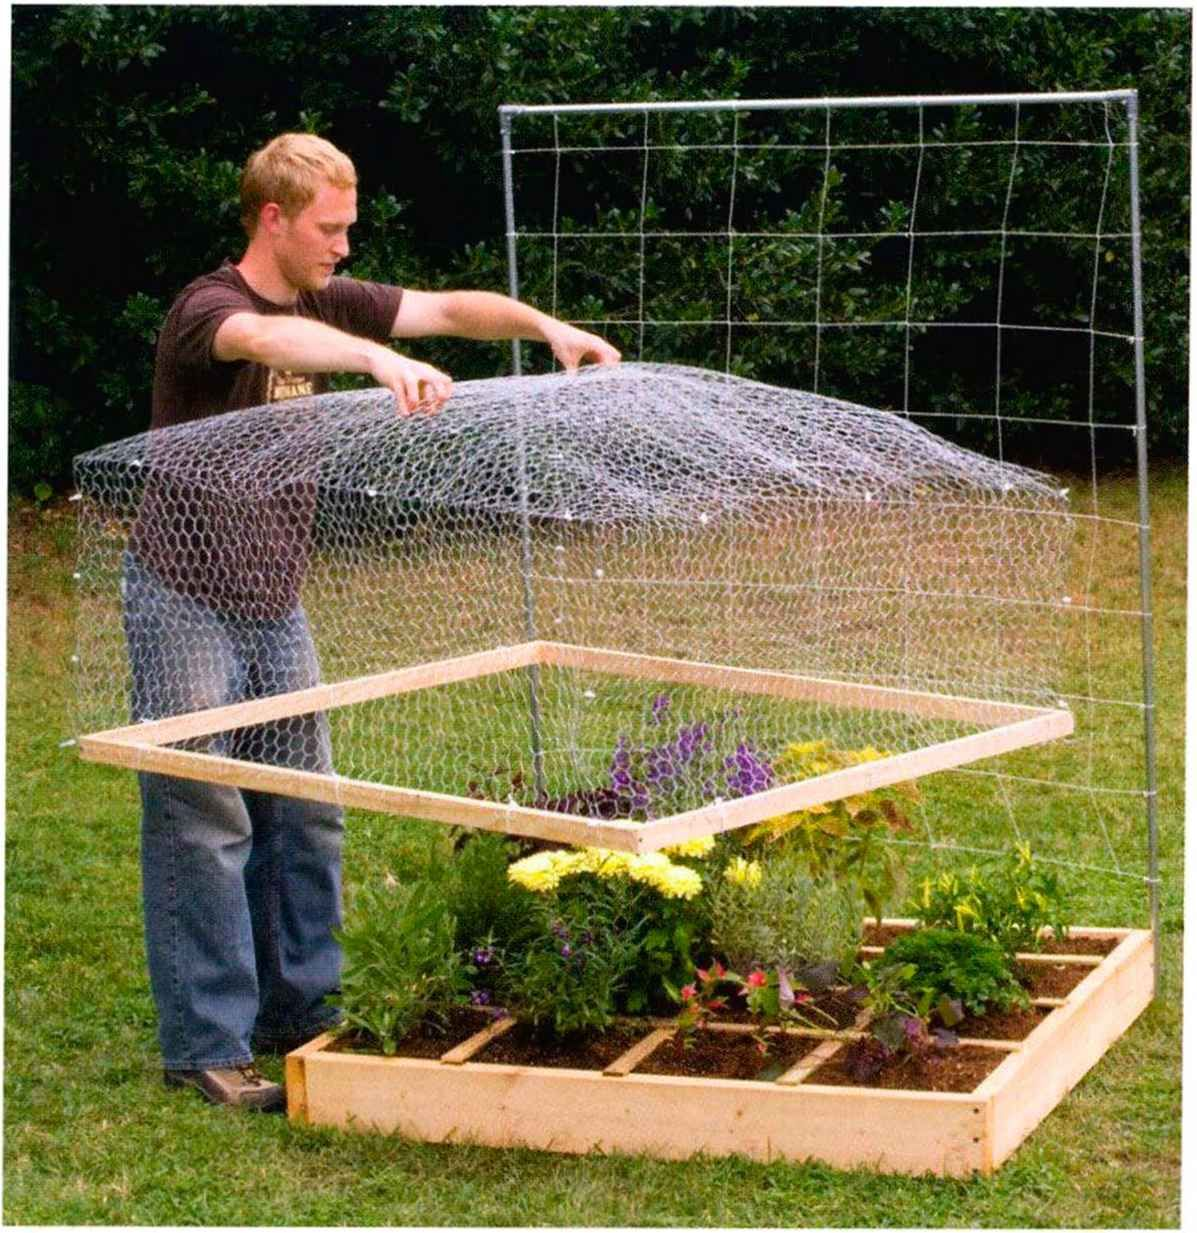 garden ideas wire mesh lid to keep out animals - Garden Ideas To Keep Animals Out